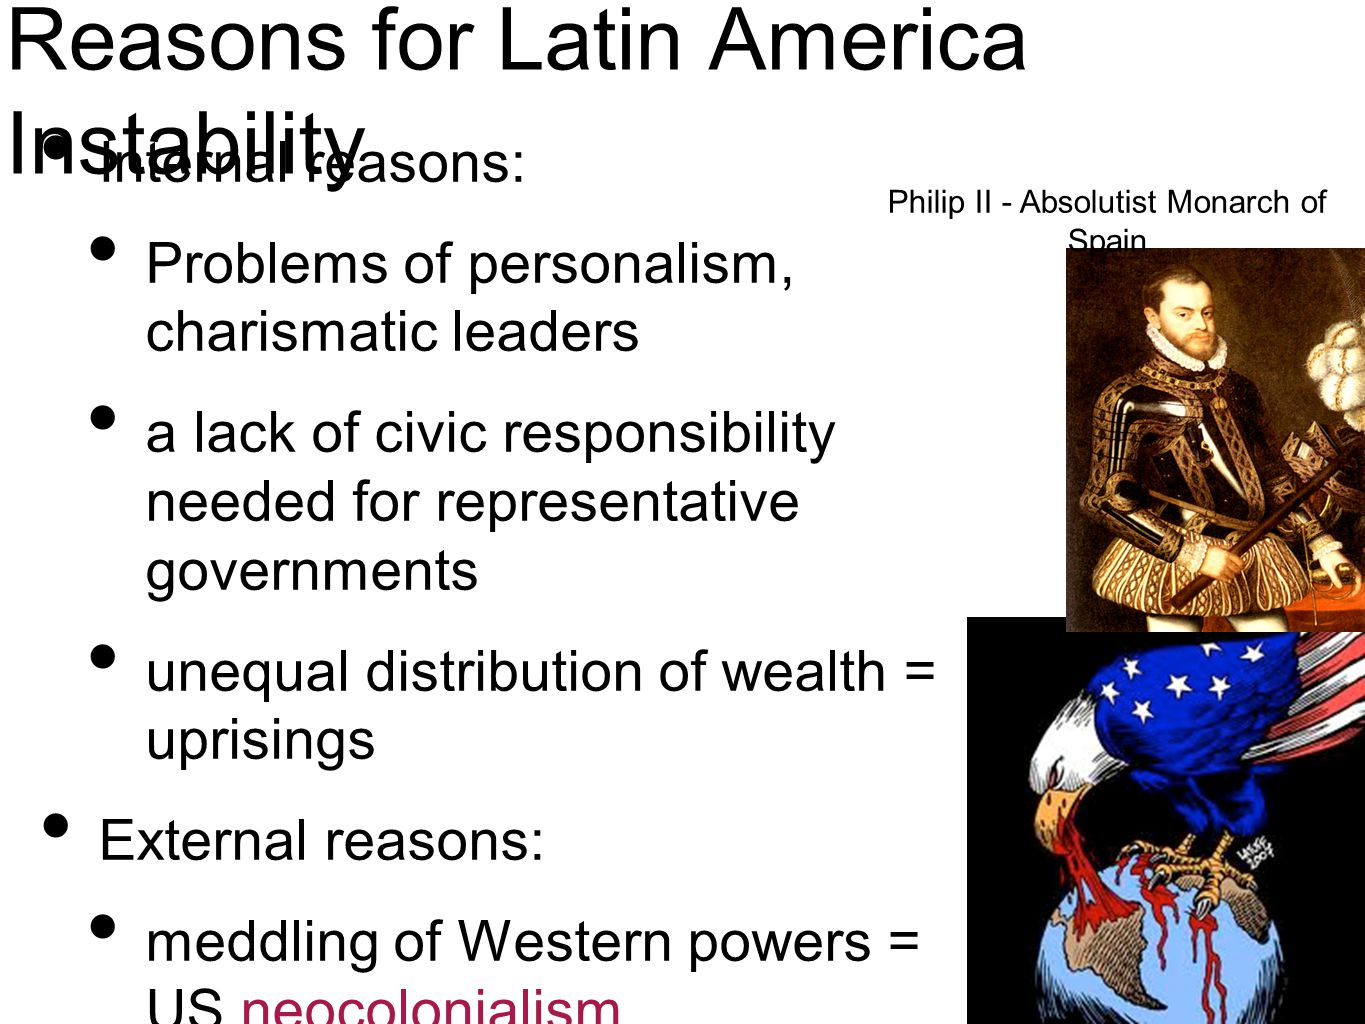 Reasons for Latin America Instability